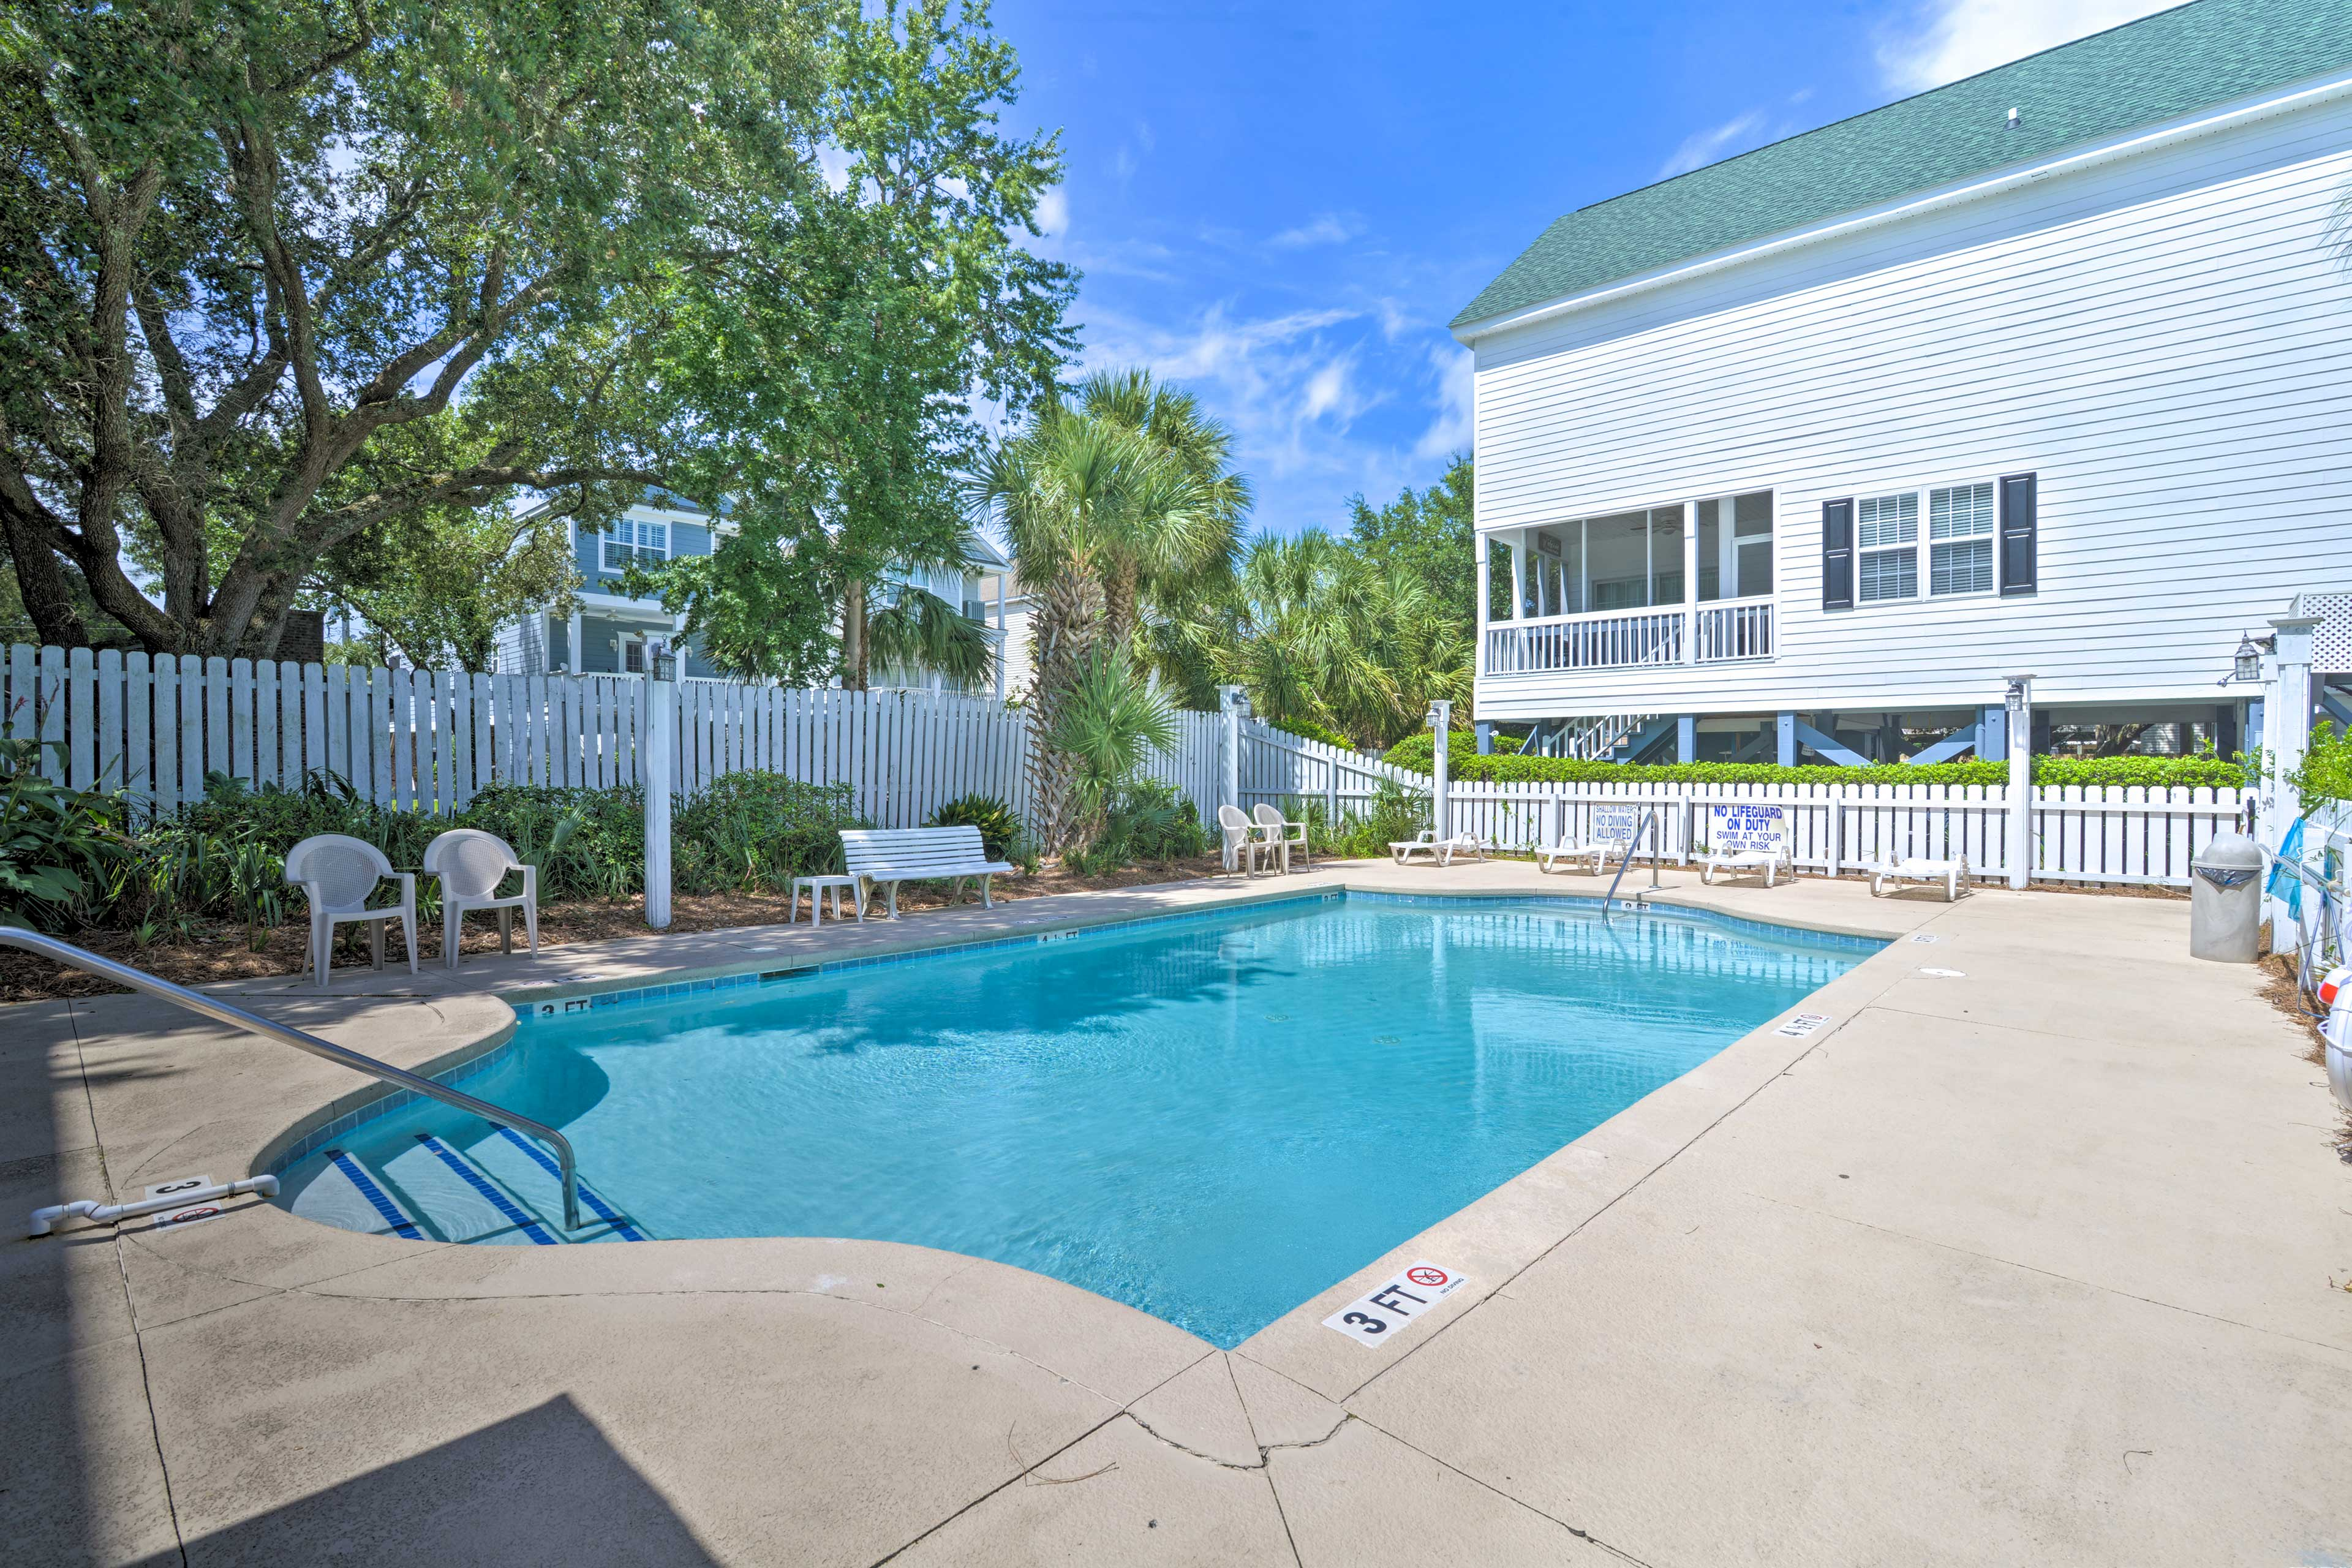 Lounge the day away by the community pool, just steps from this vacation rental.